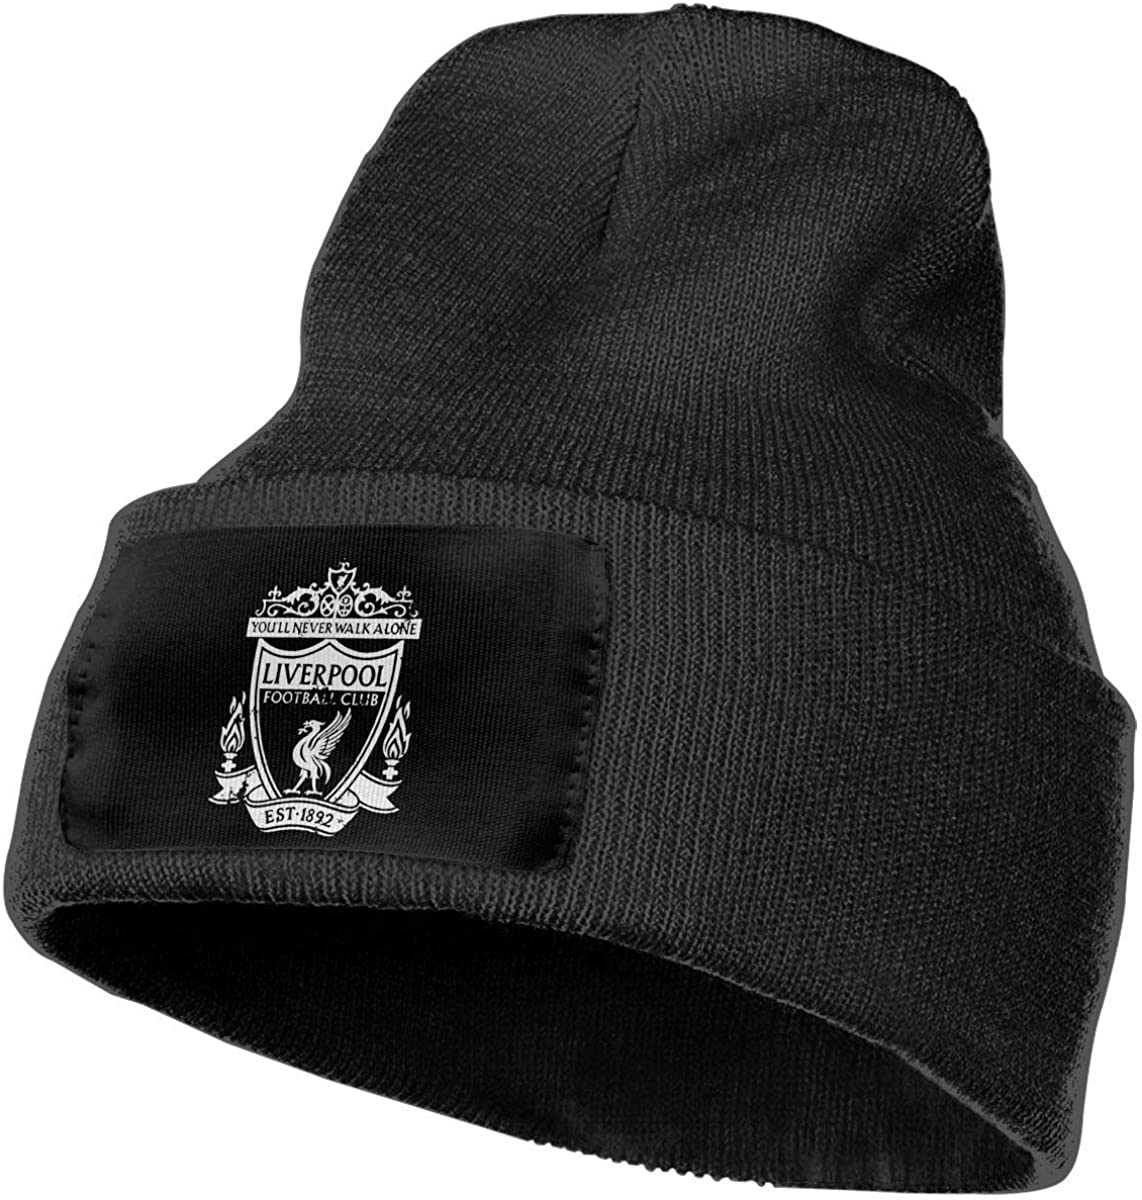 Men/Women Liverpool Football Outdoor Fashion Knit Beanies Hat Soft ...